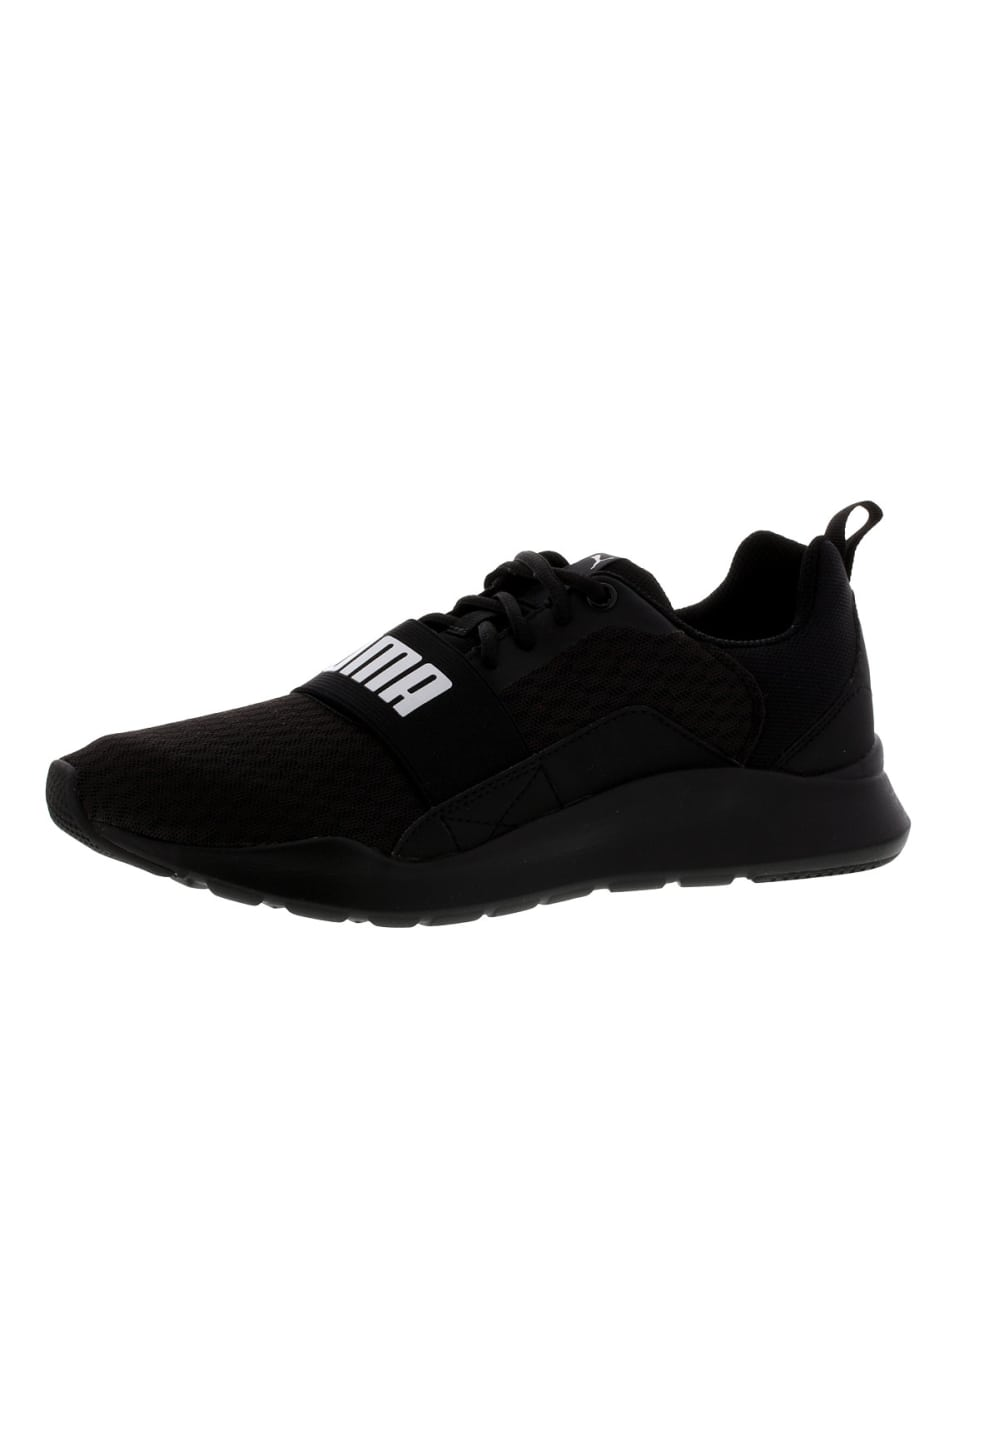 ffb0f0d3e51 Puma Wired - Running shoes - Black